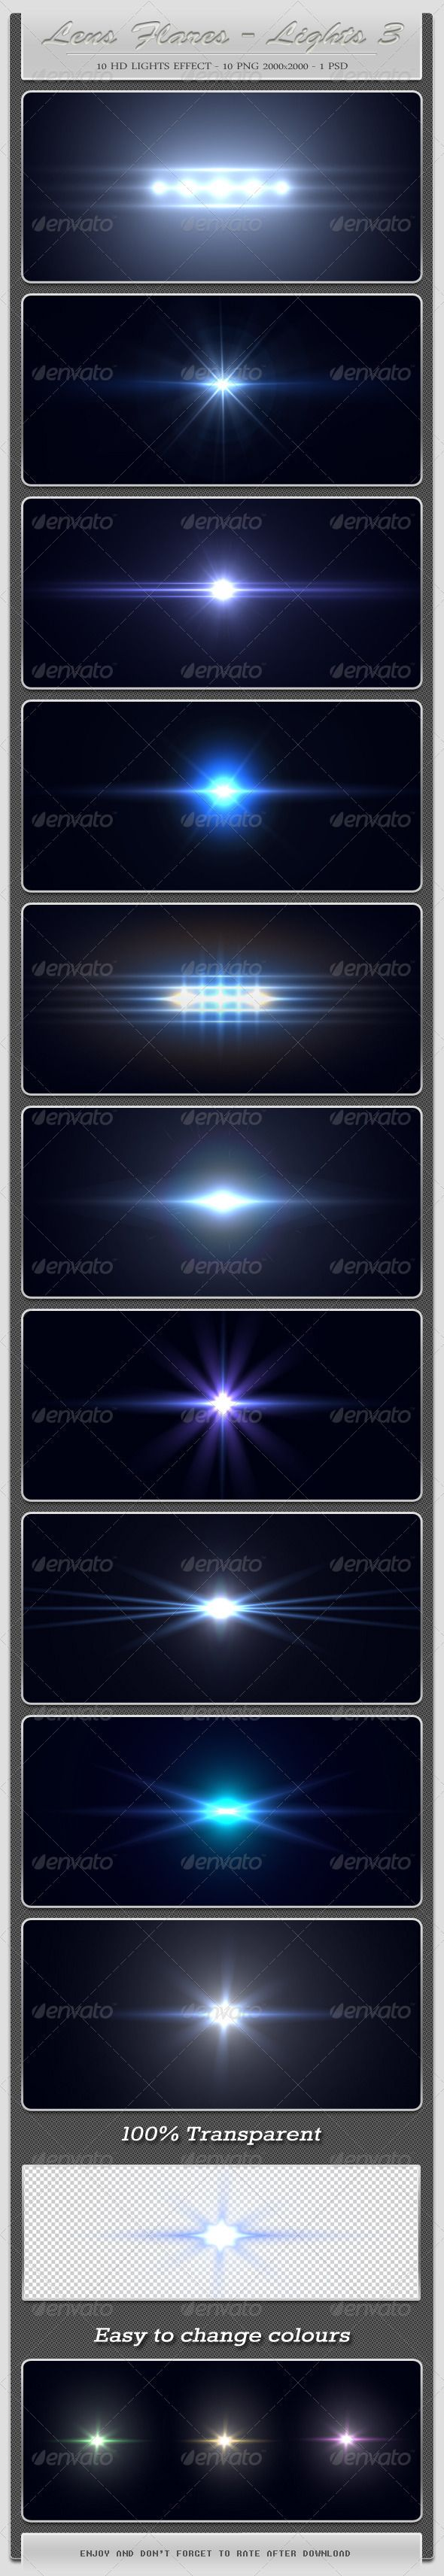 10 HD Lens Flares - Light Effects 3 by rotrio on DeviantArt